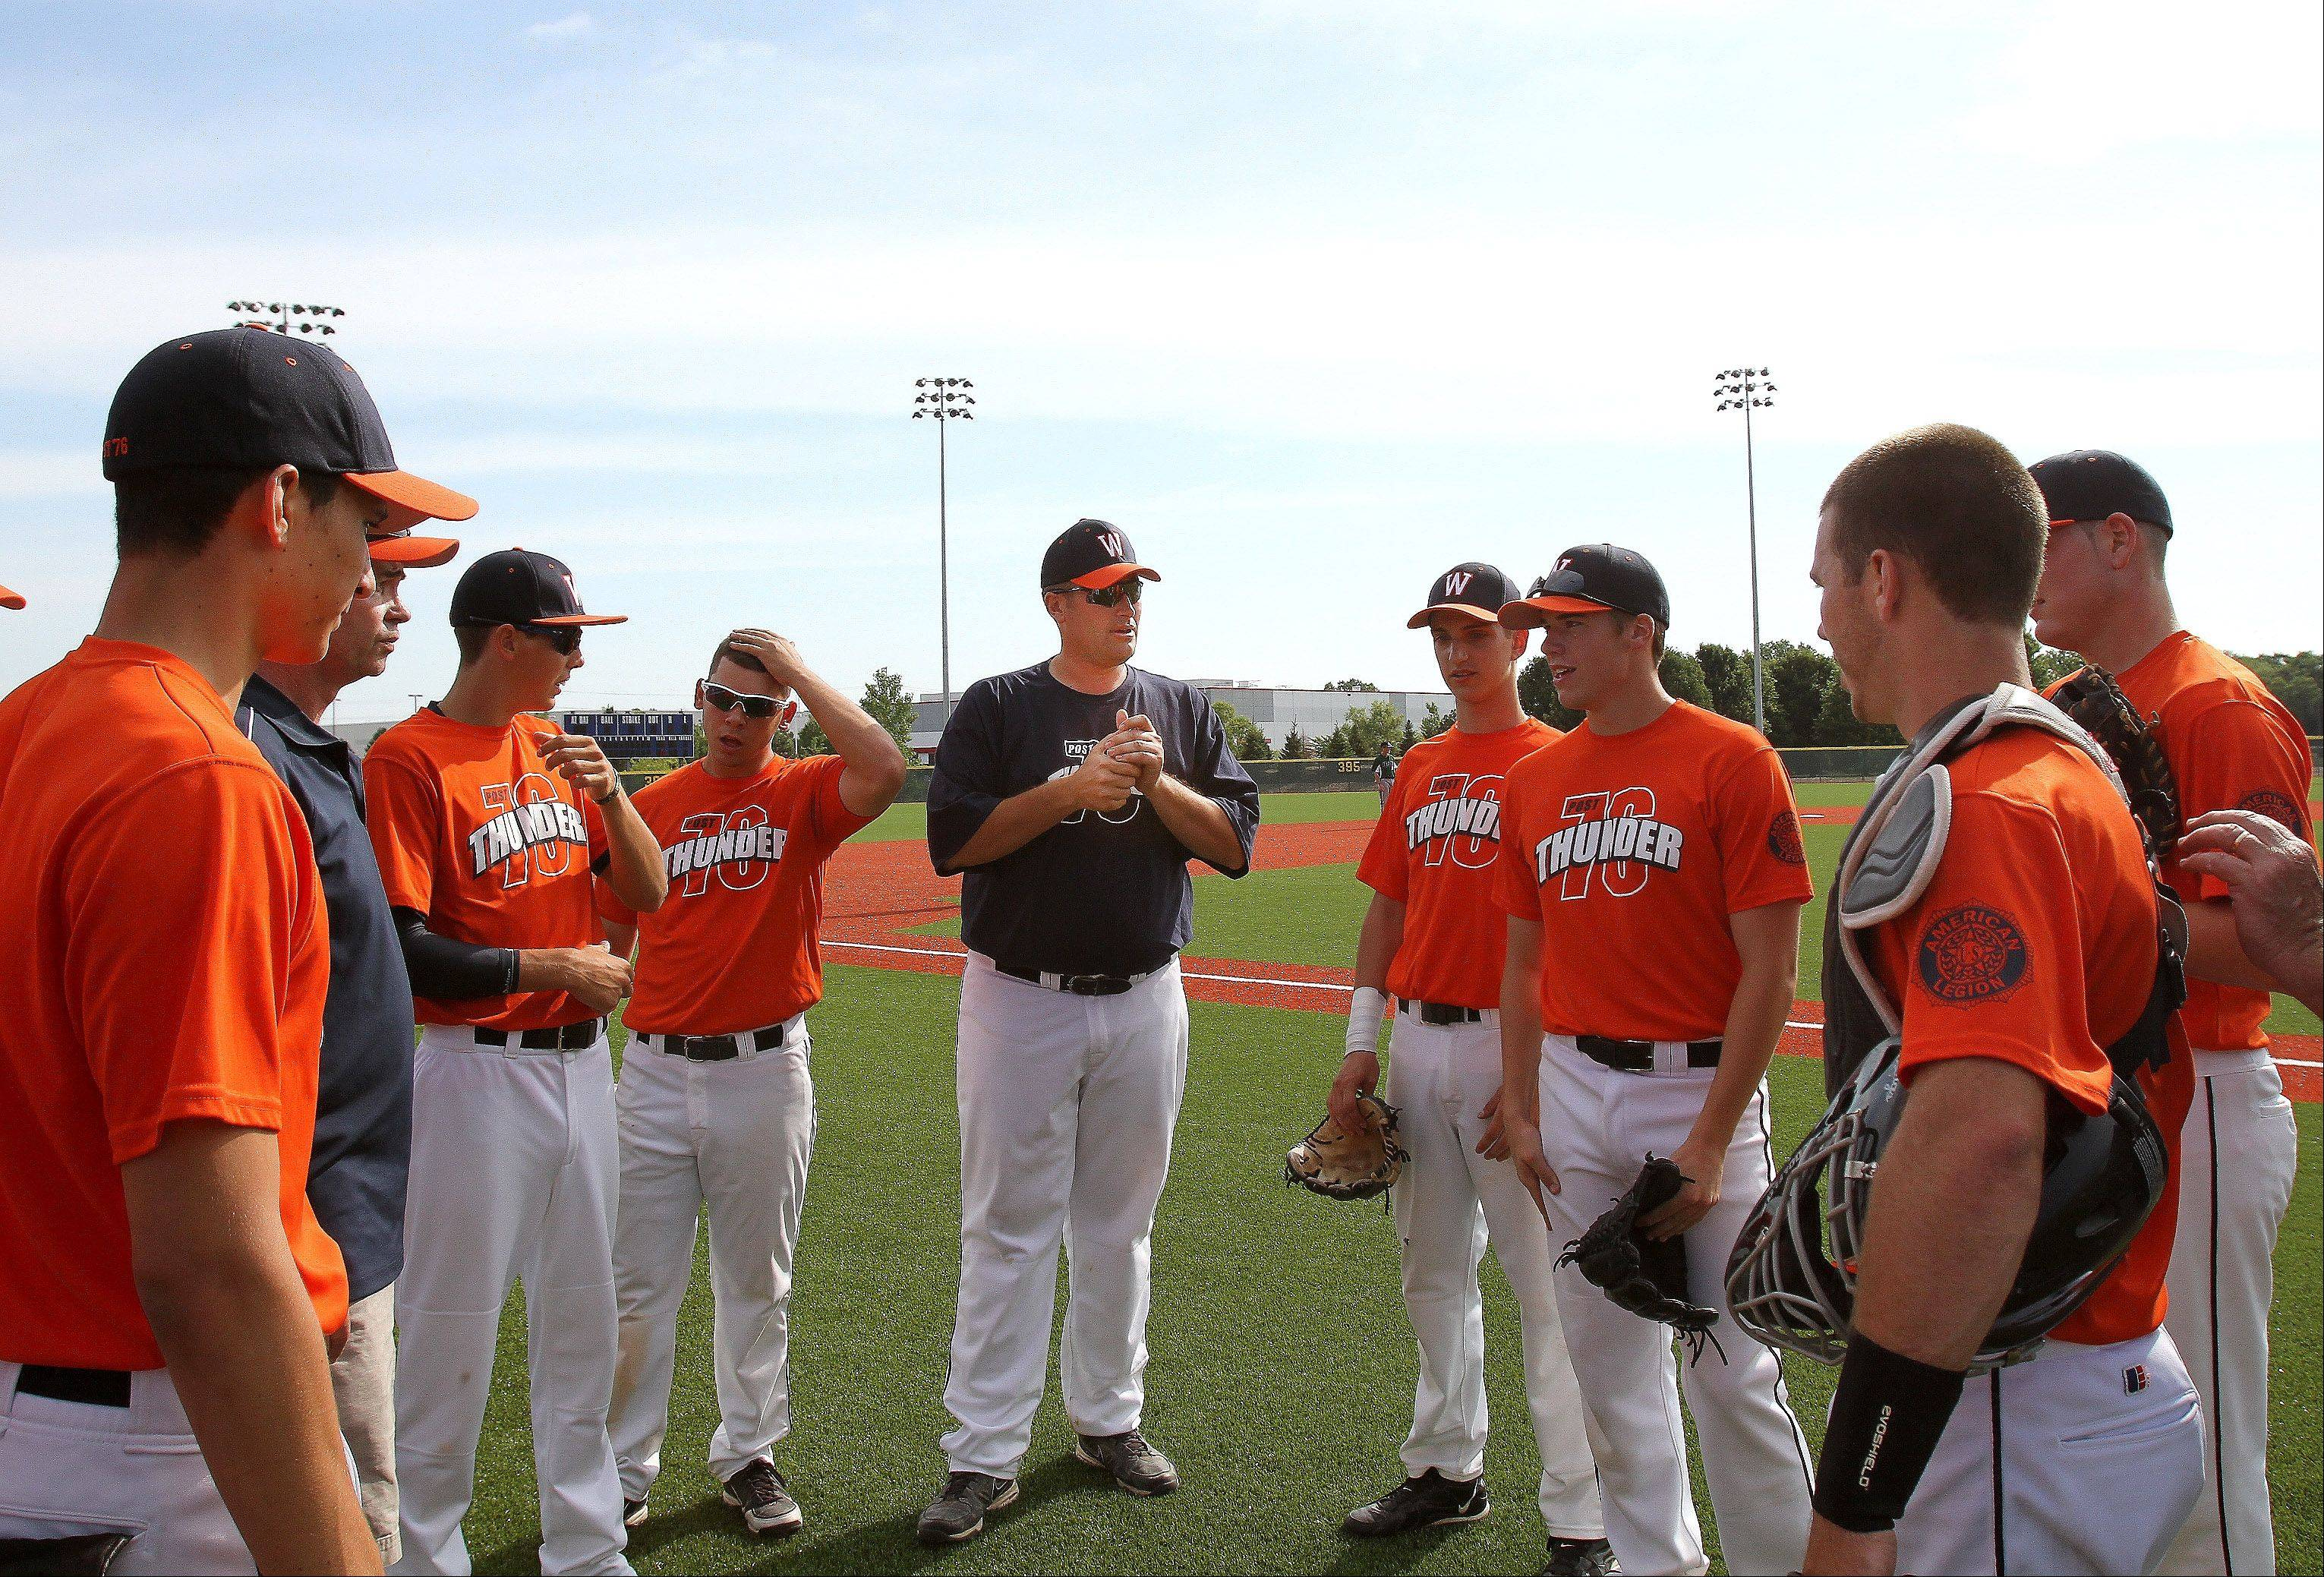 Jerry Miller, center, coach of the Post 76 Thunder, meets with his team Friday on opening day of the Legion Post 76 Summer Classic Tournament in Carol Stream. The tourney, which runs through Sunday, features 20 teams from four Midwestern states.